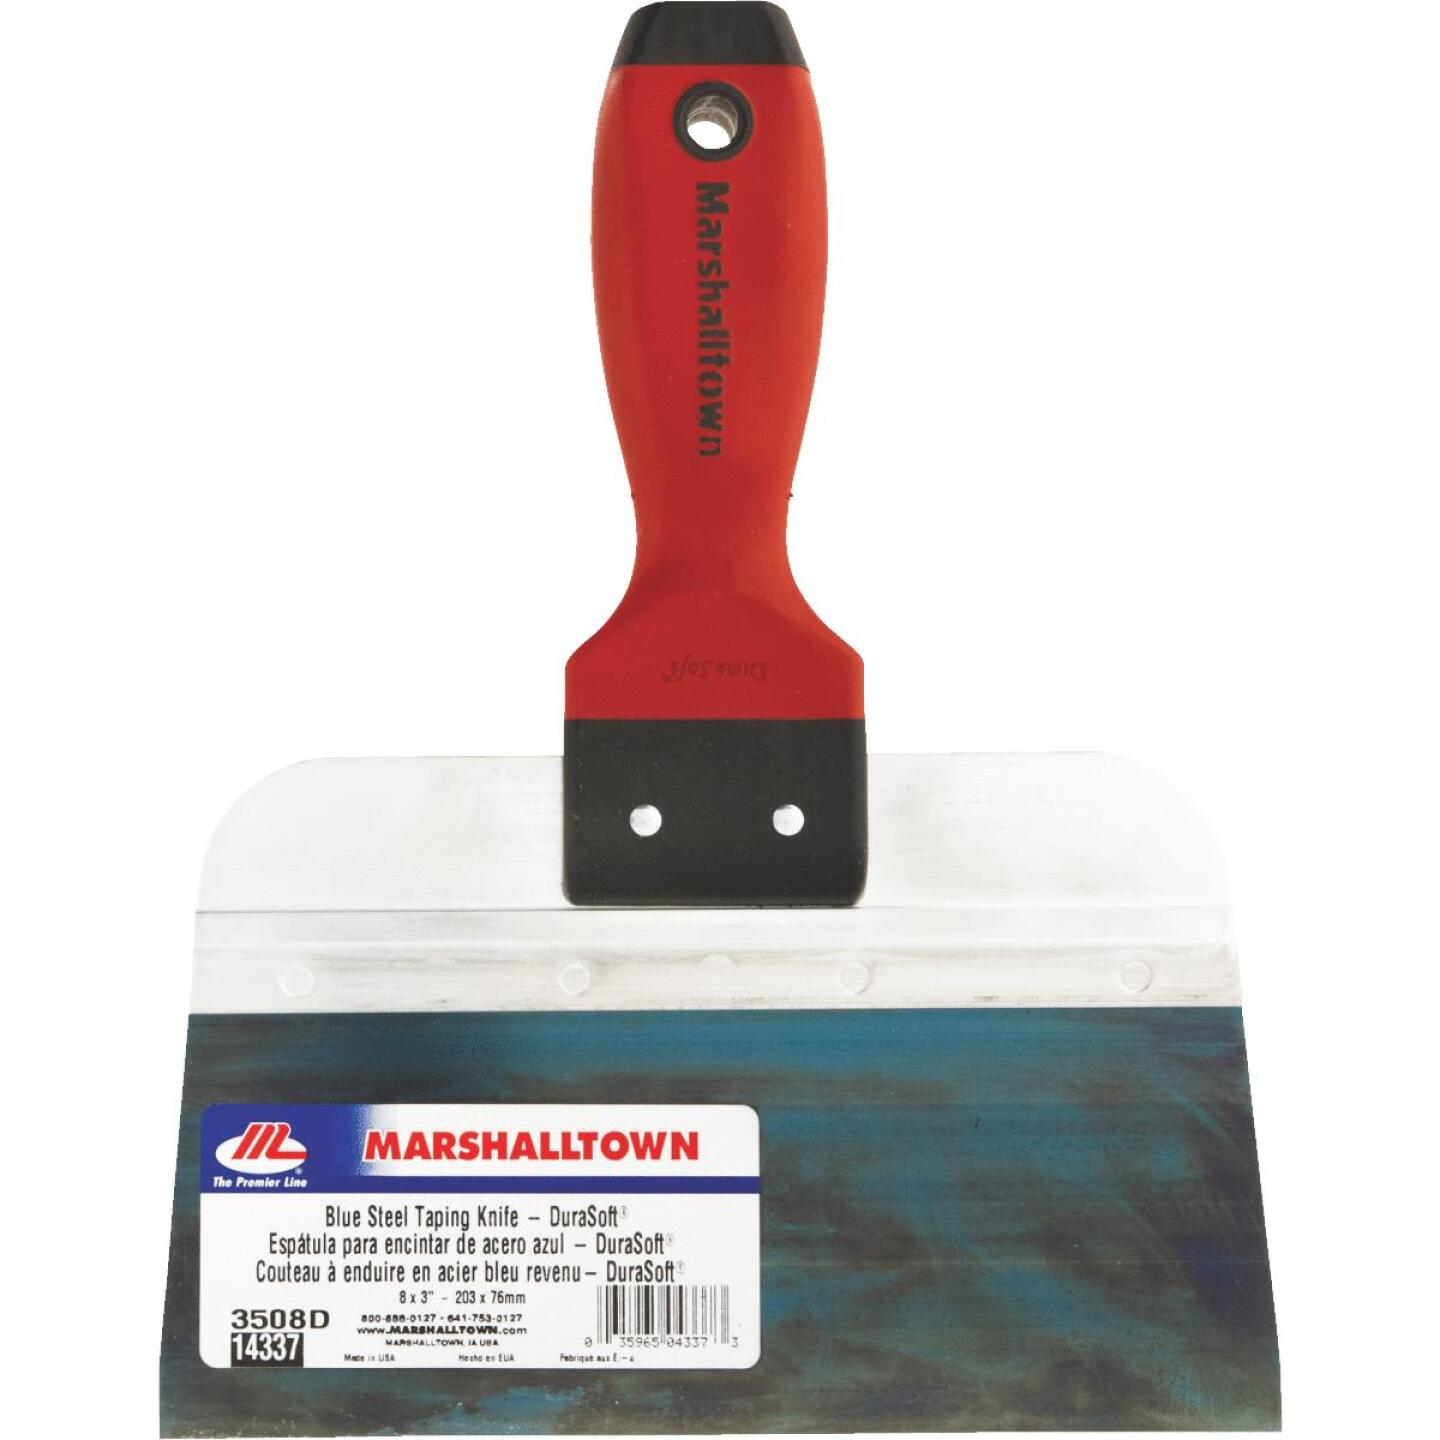 Marshalltown 8 In. Steel Taping Knife Image 2